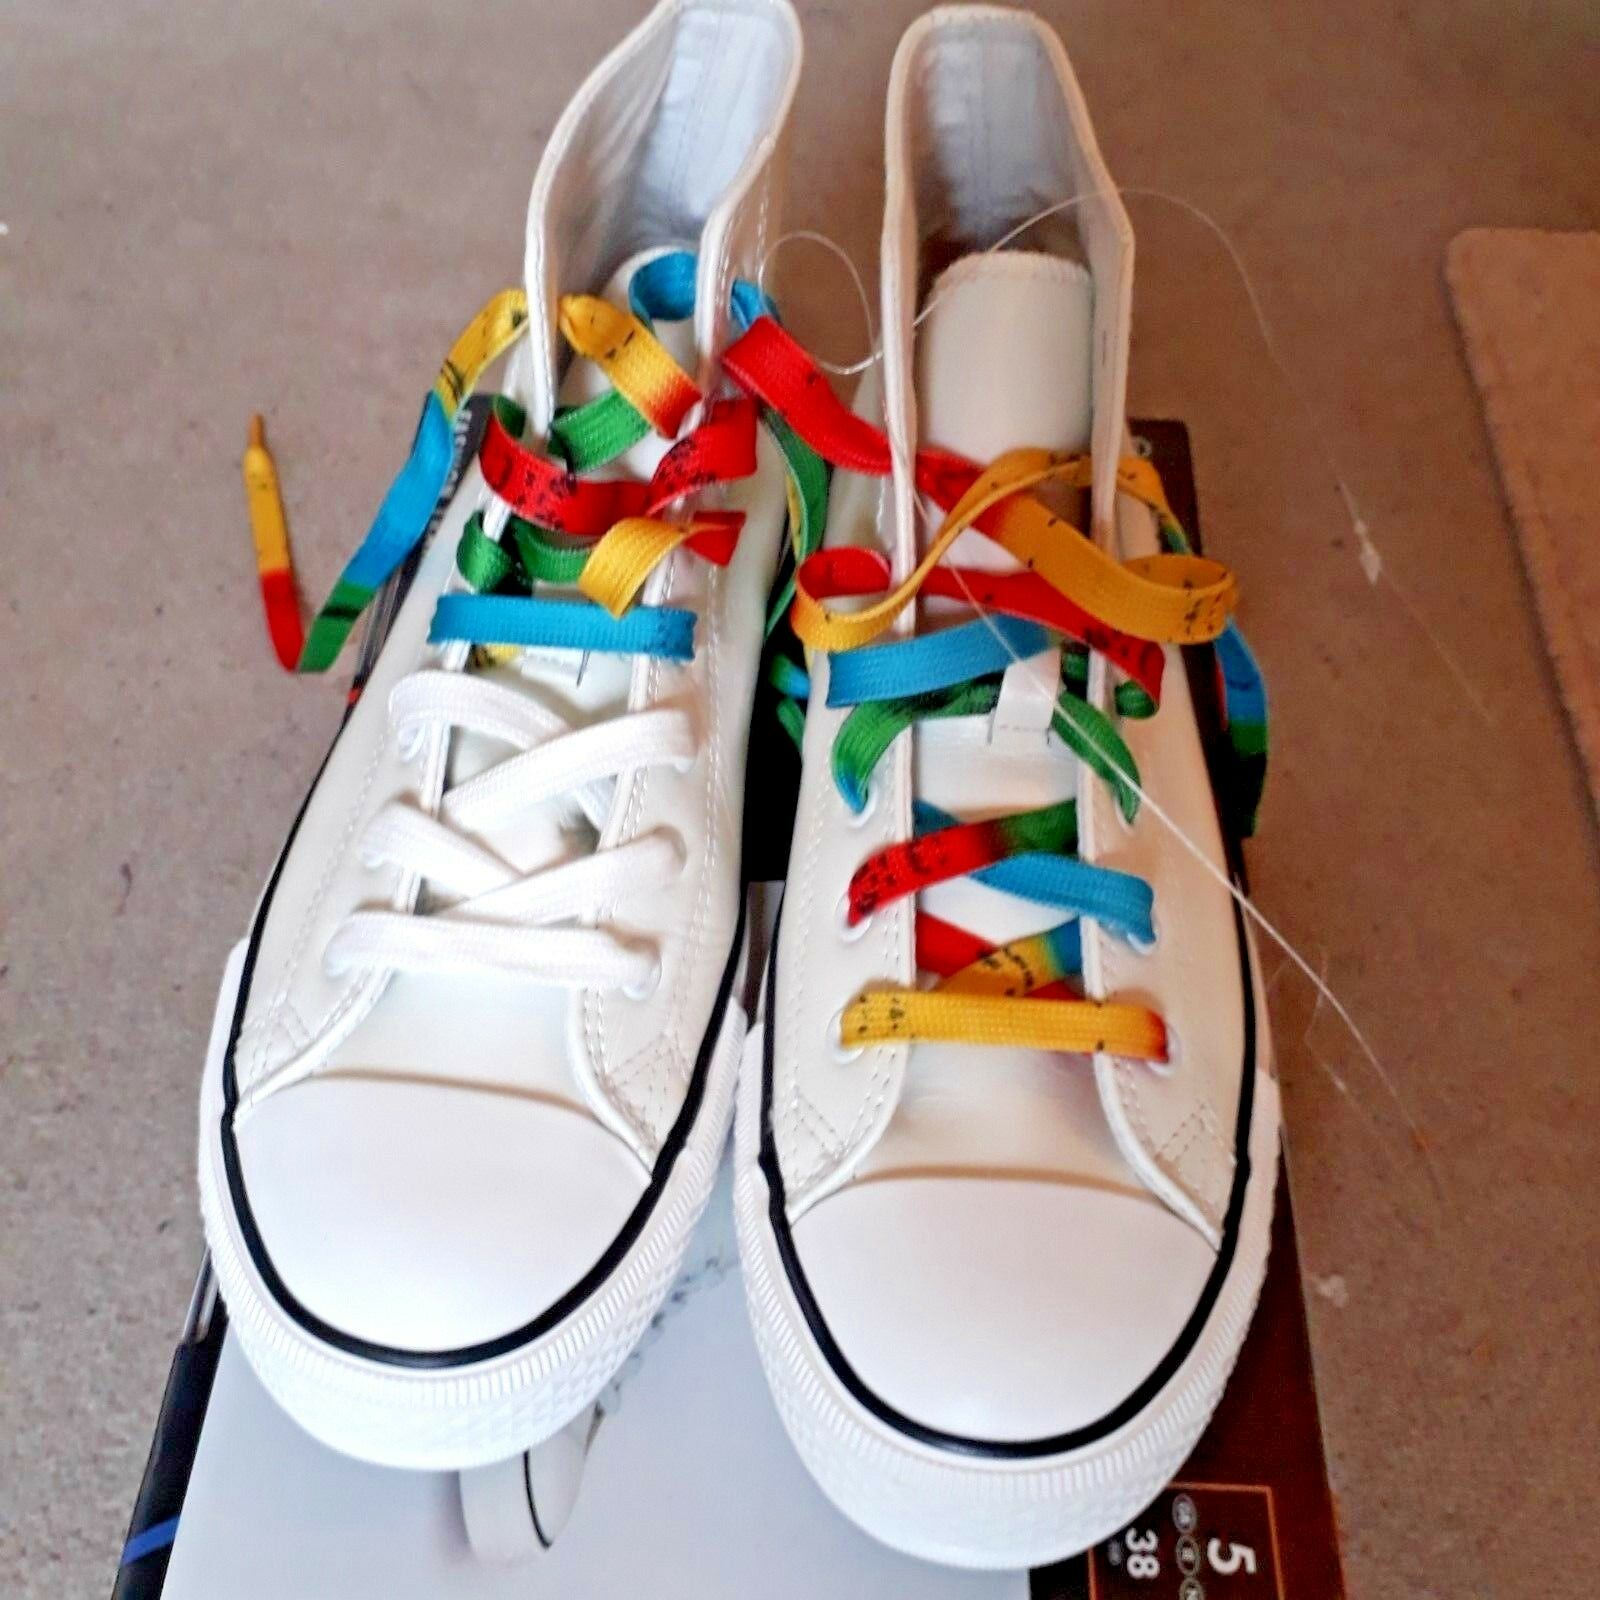 Esmara by Heidi Klum Leather Trainers Sneakers Size 5 White New with Box